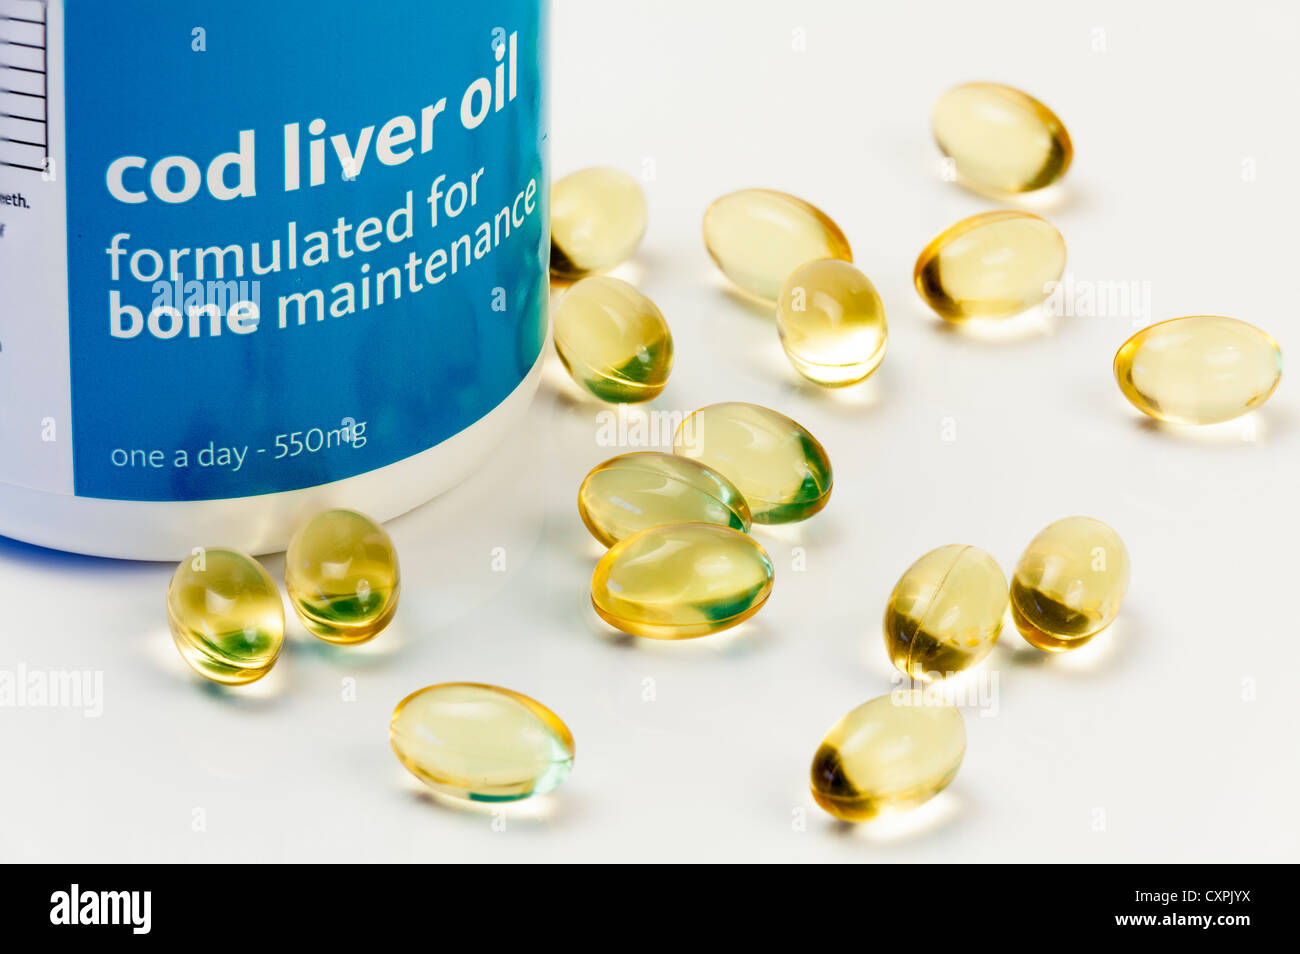 Close up studio still life of cod liver oil Capsules and container. - Stock Image